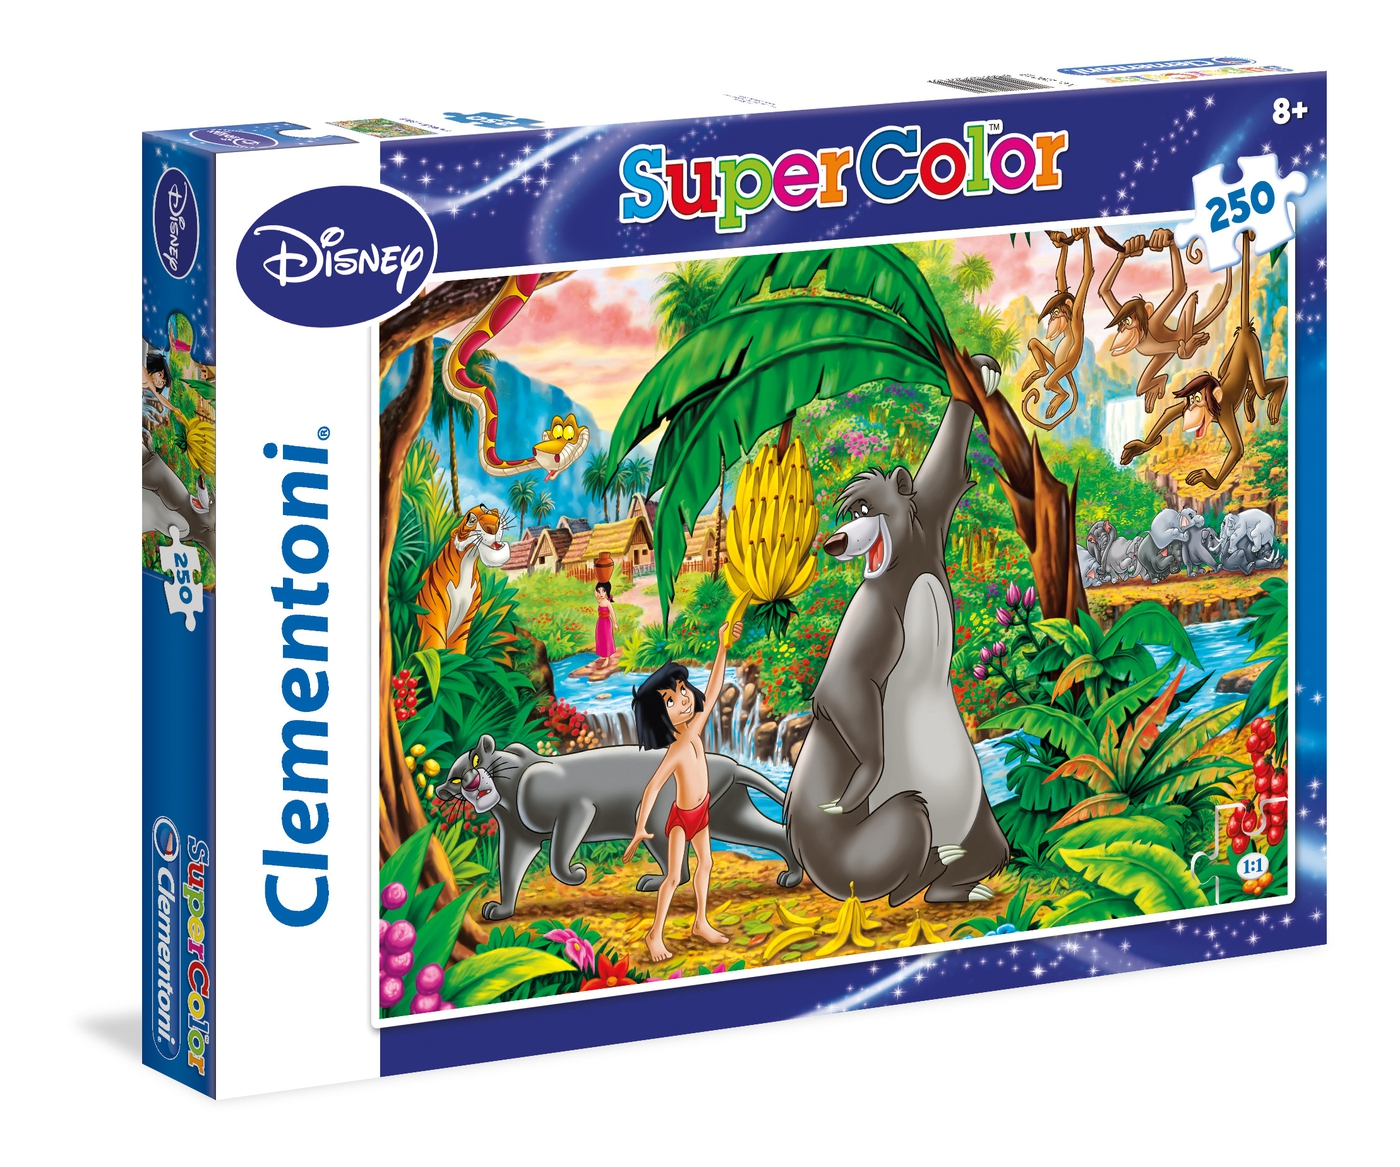 Disney Livre De La Jungle 250 Pcs Super Color Clementoni